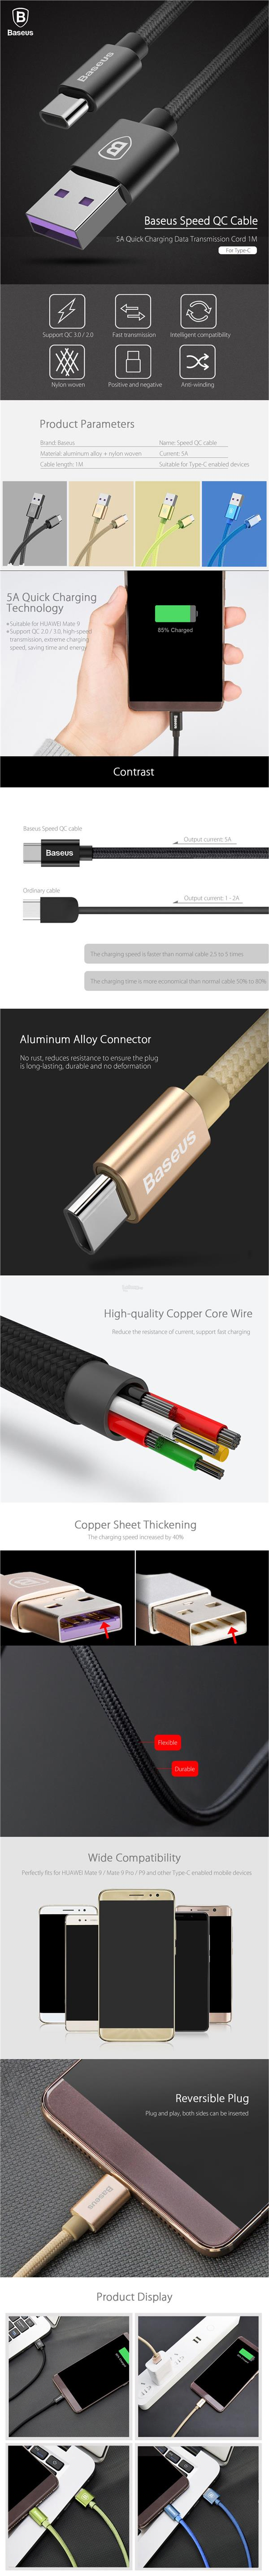 Baseus High Speed Type-C Nylon 5A Quick Charge Charging/Data Cable